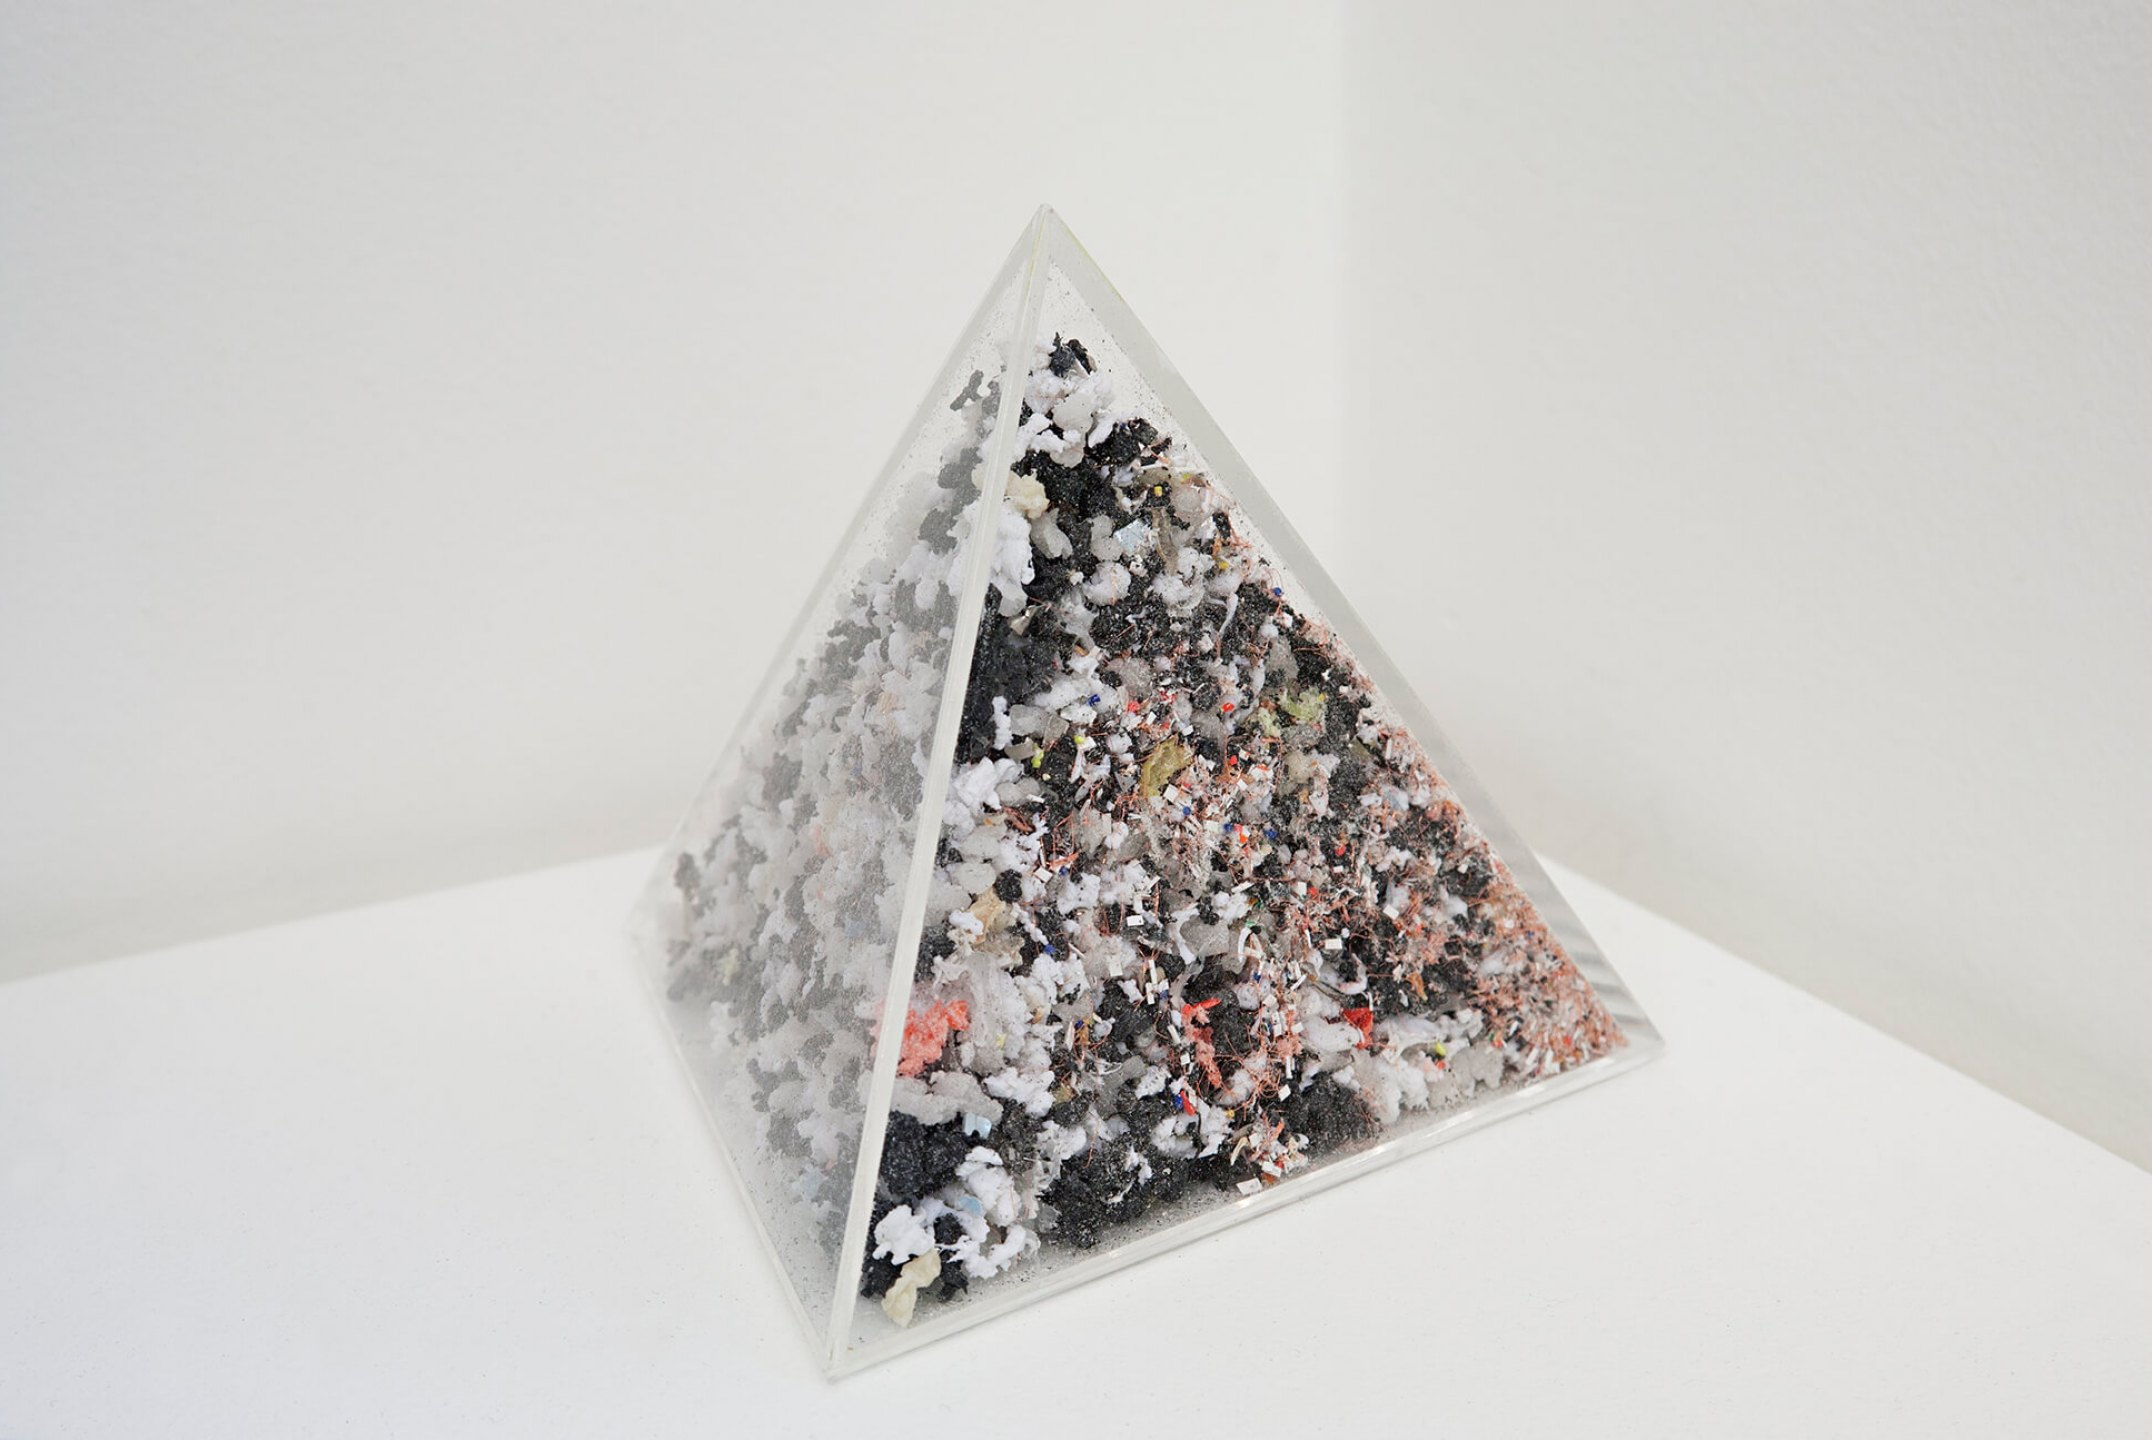 Roberto Winter,&nbsp;<em>Objeto subtraído (relógio),</em> 2013, acrylic tetrahedron and three destroyed clocks, 11 × 11 × 11 cm - Mendes Wood DM